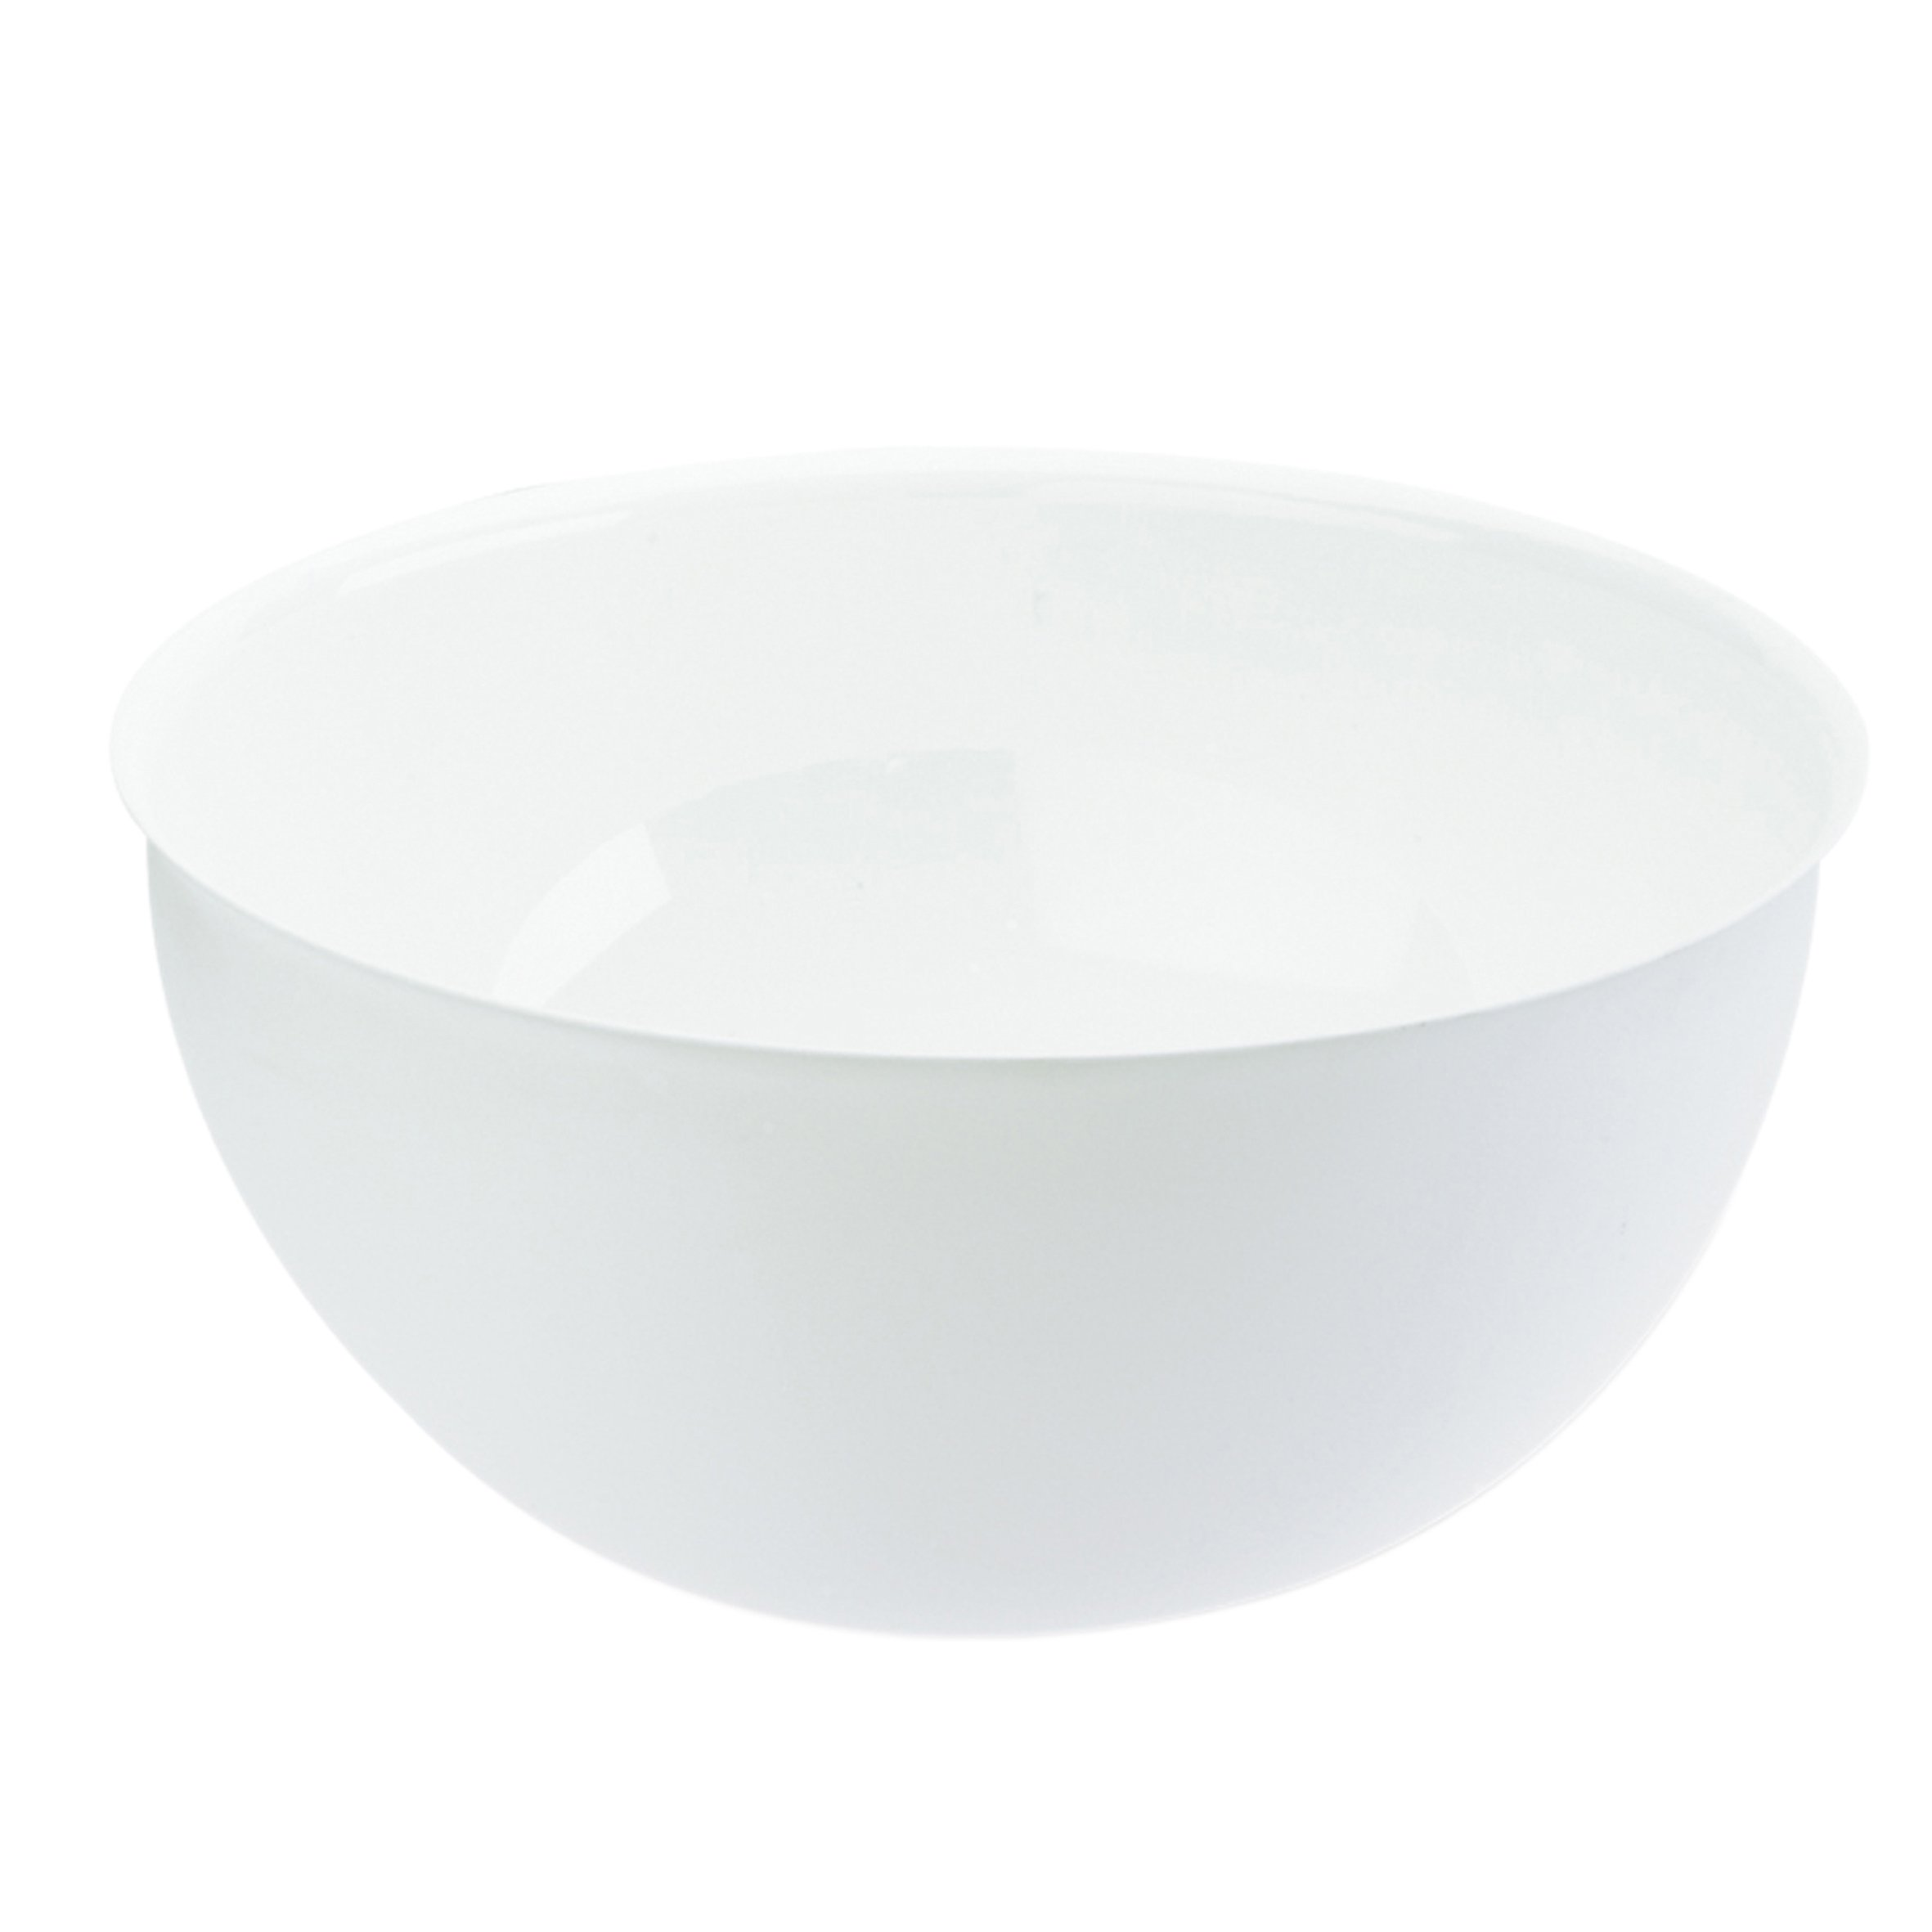 koziol (3807525) PALSBY L large Bowl 280 mm/11 in / 5 l/170 fl.oz, solid white